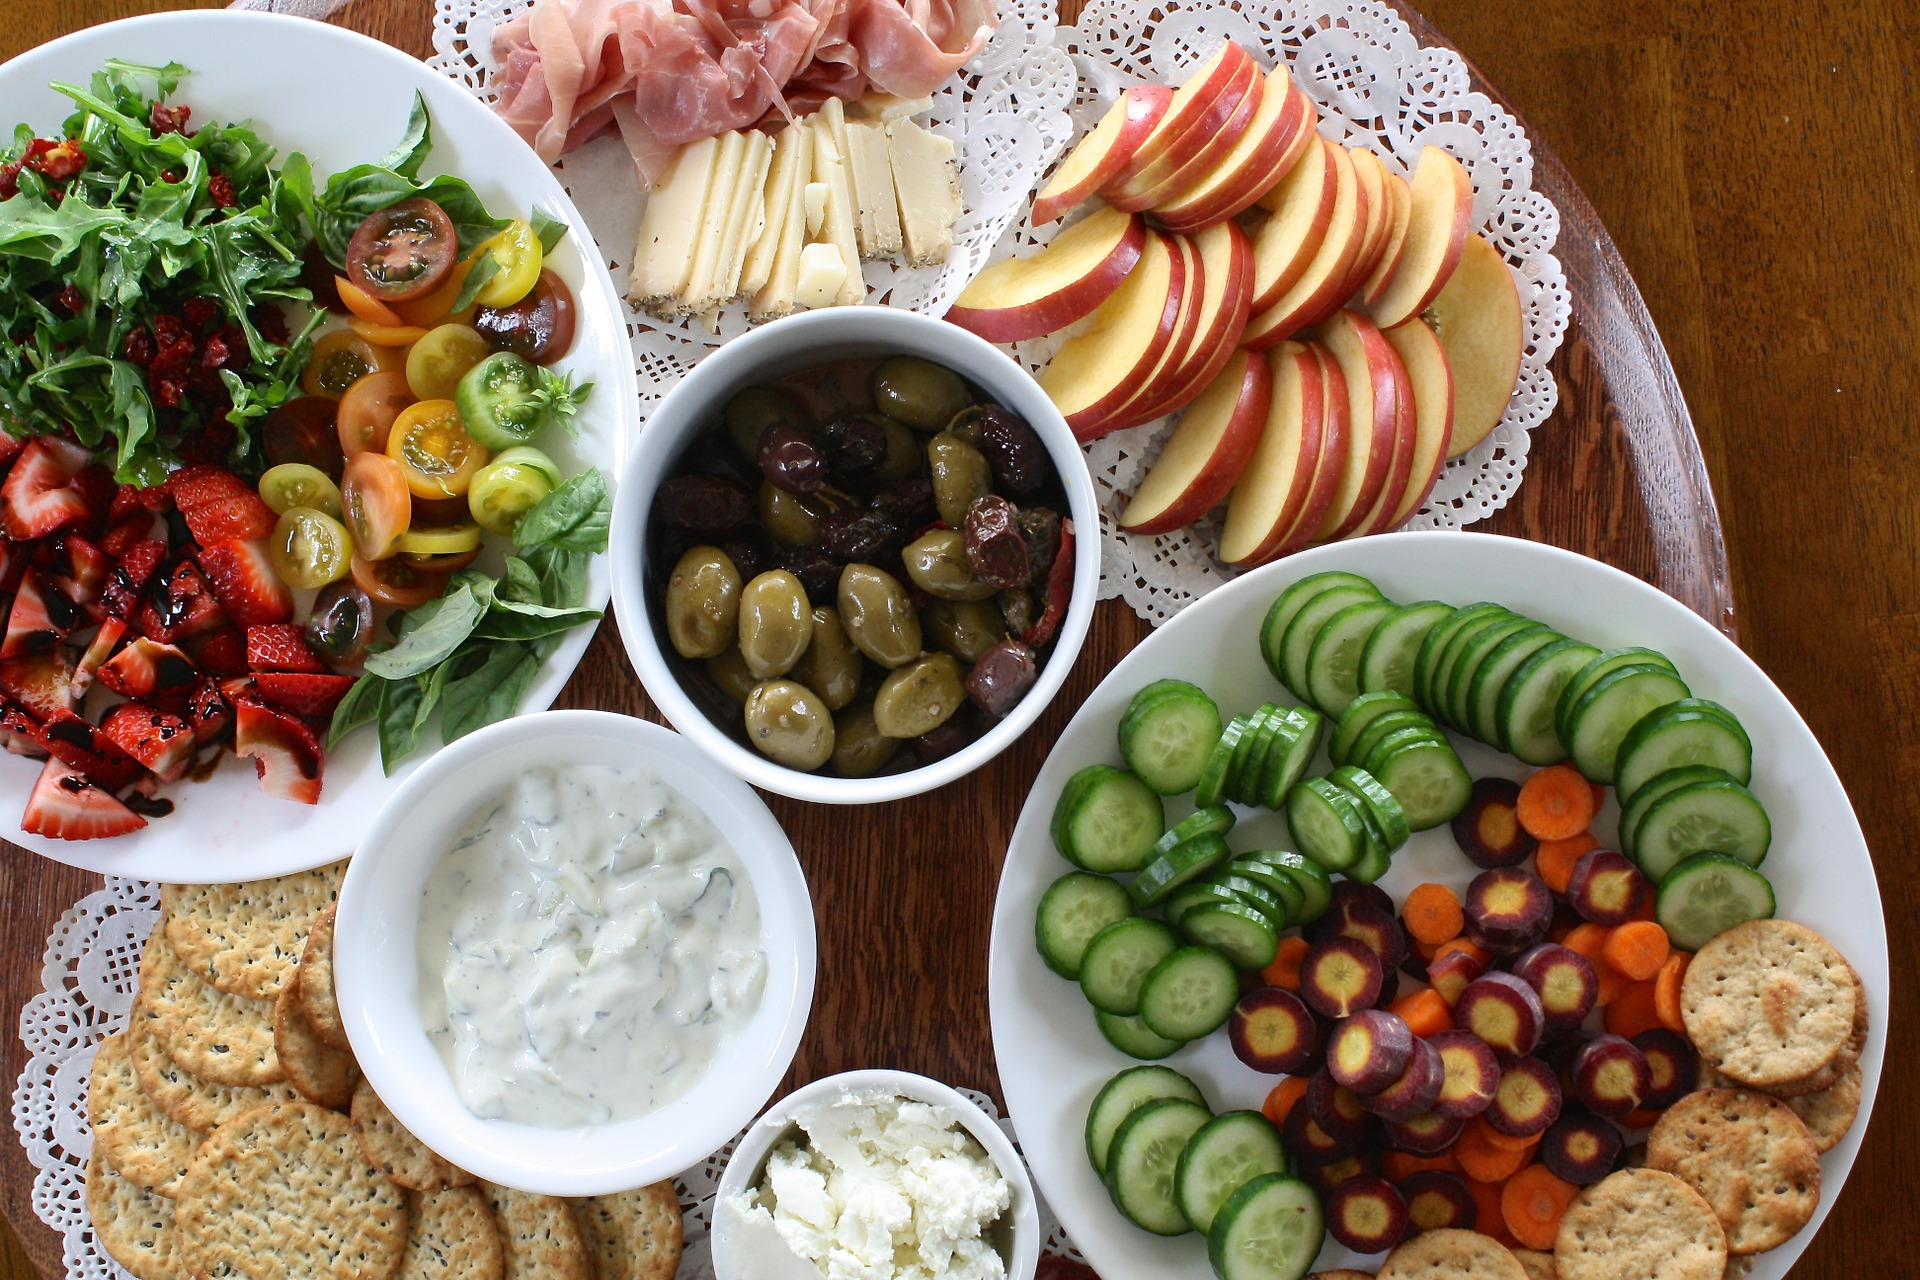 Snacking puts you in a good mood